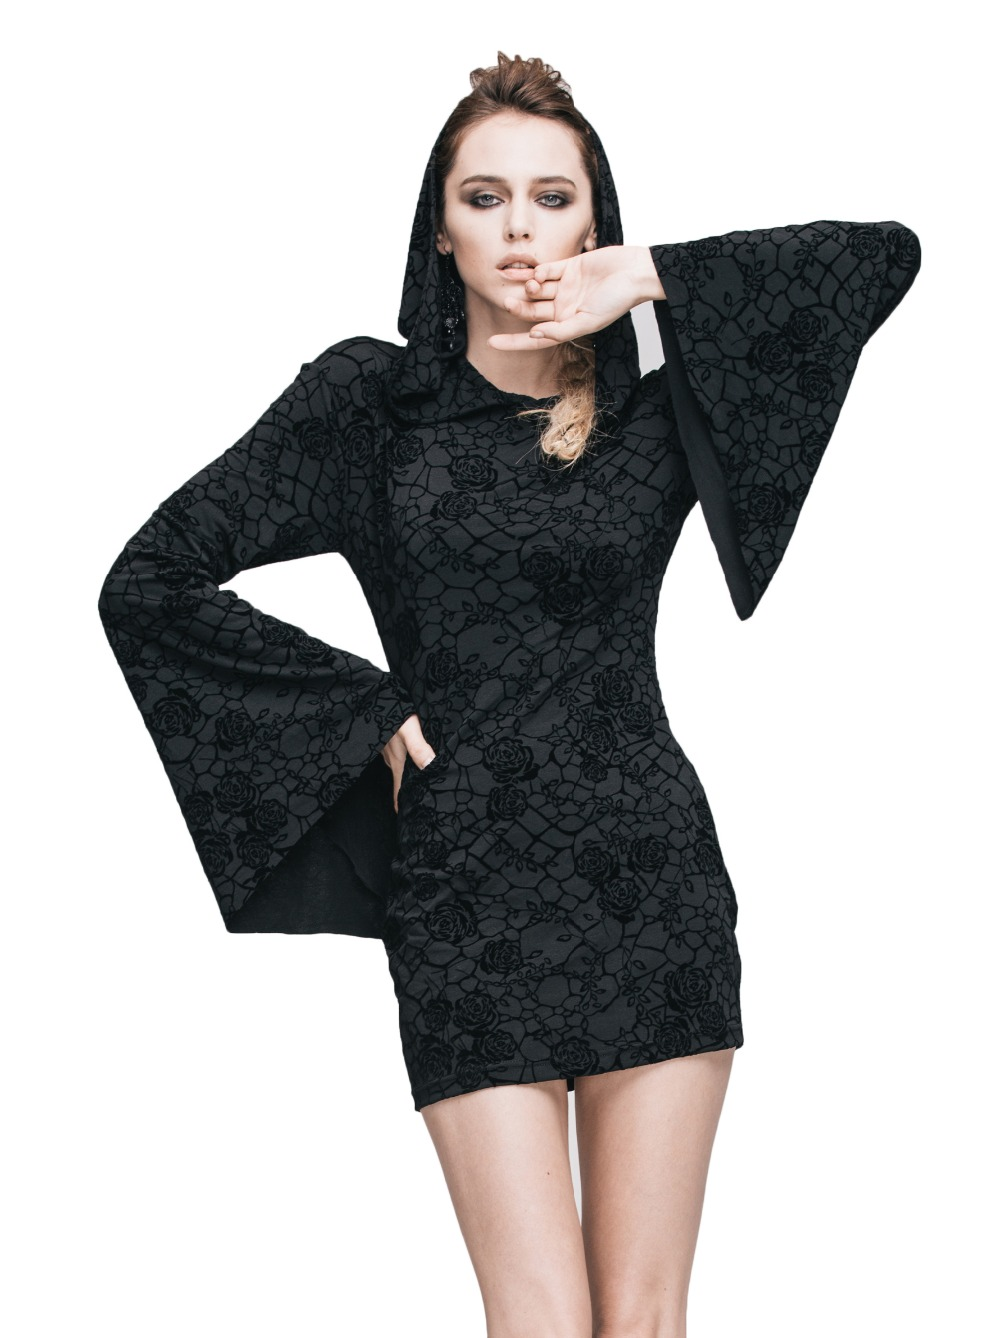 Steampunk Gothic Ukraine Black Dresses For Women Roses Print Flocking Knitted Dress With Hooded Long Sleeve Women Clothing 8